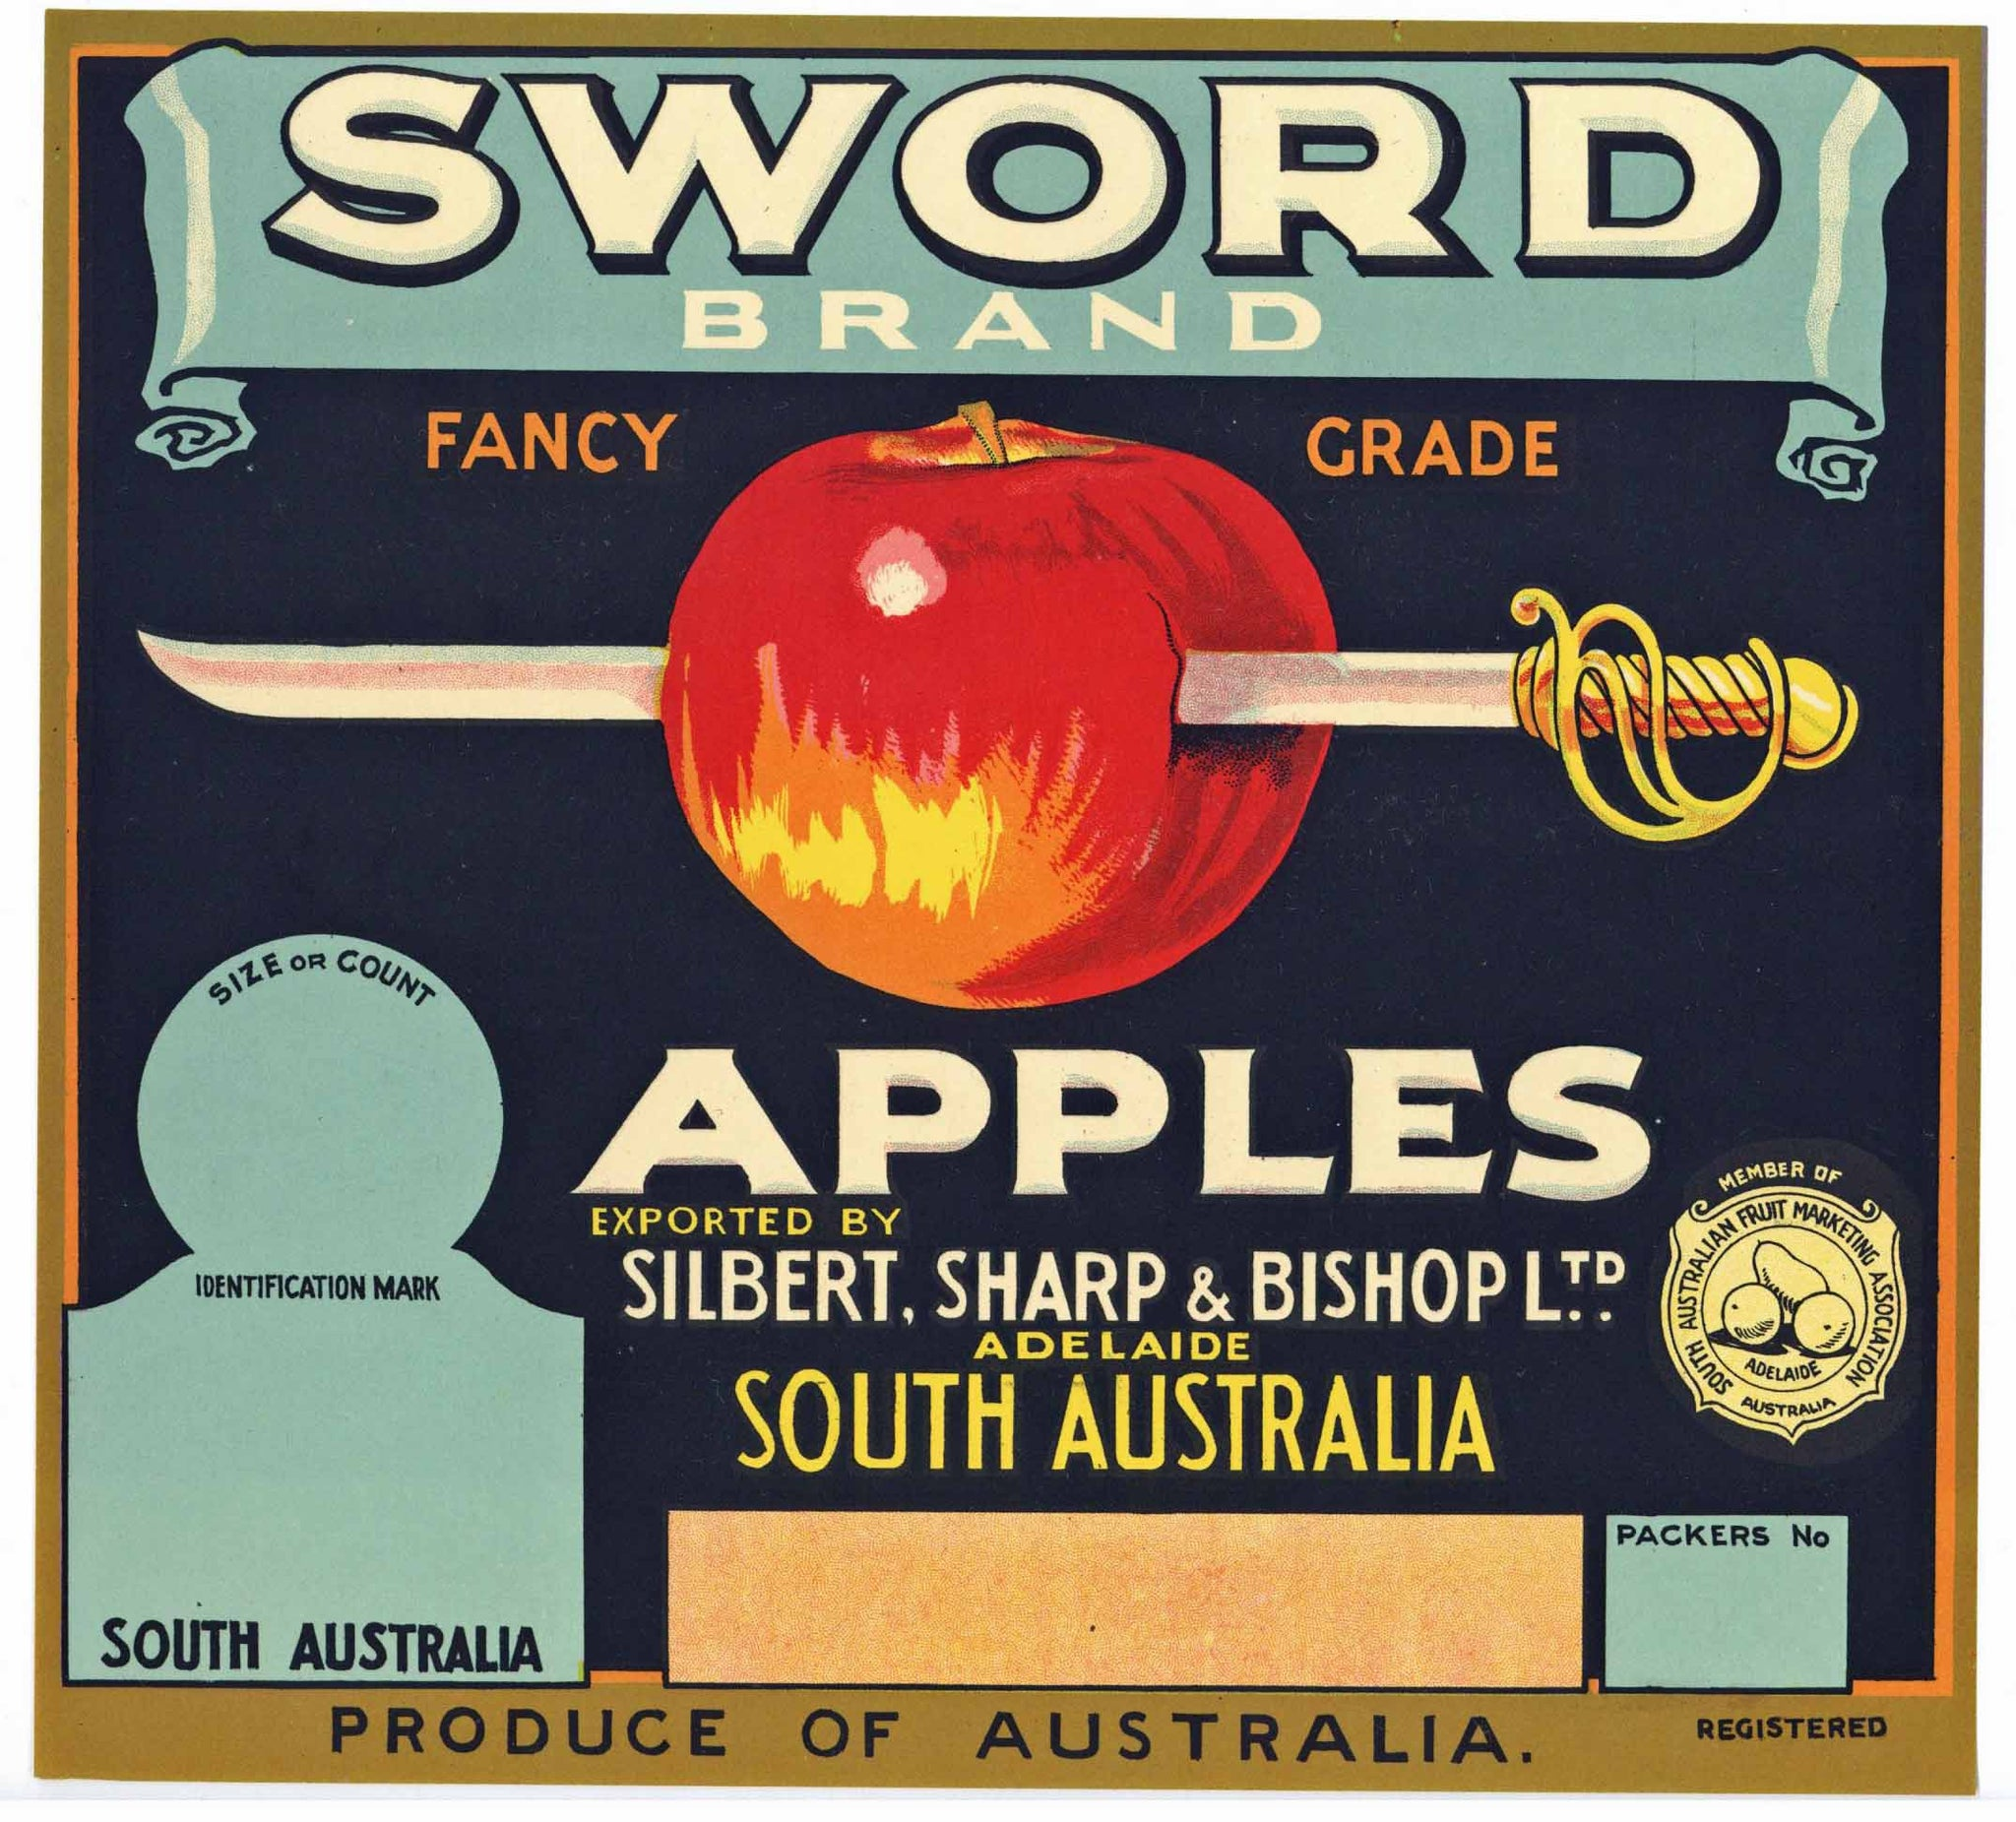 Sword Brand Adelaide South Australia Apple Crate Label